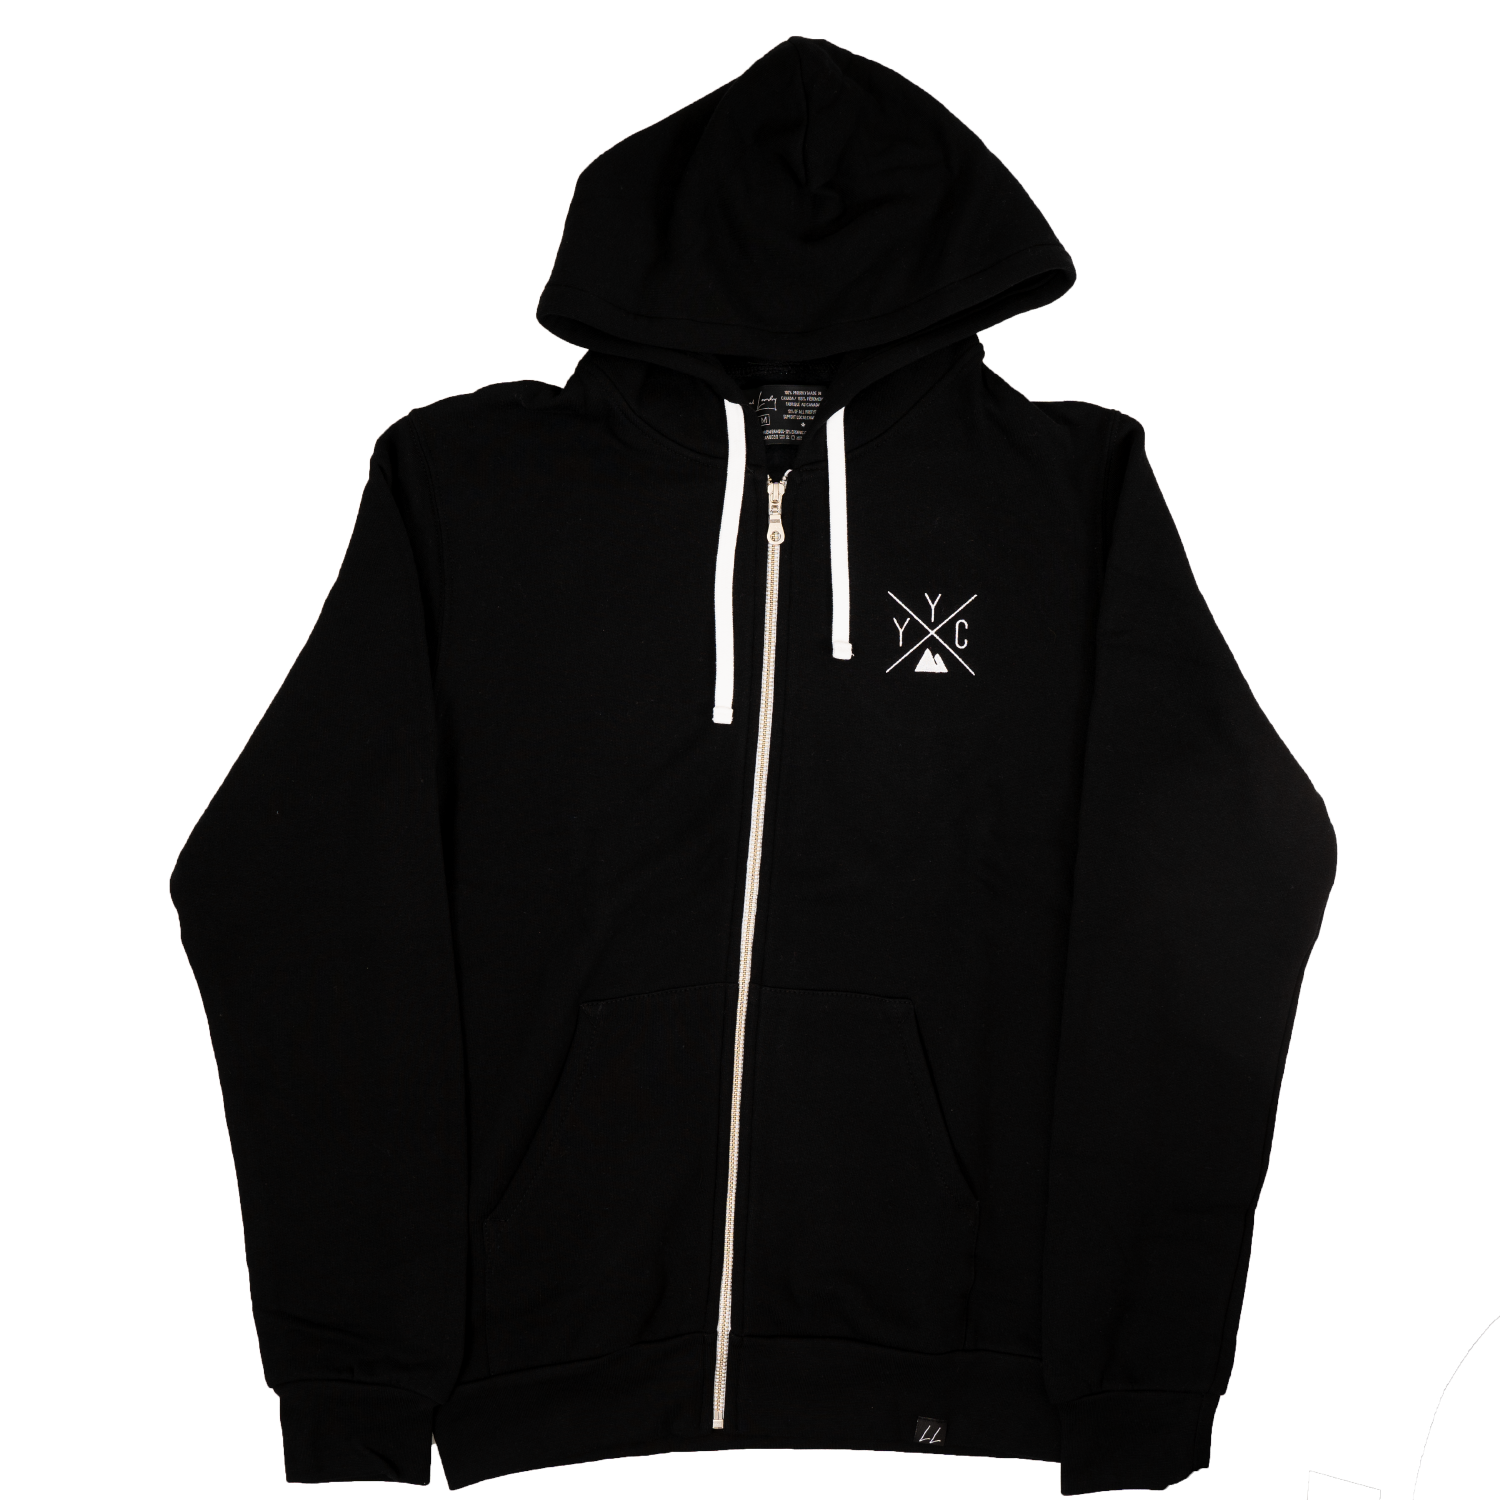 YYC Bamboo Zip-Up Hoodie - Black 🇨🇦 - Local Laundry